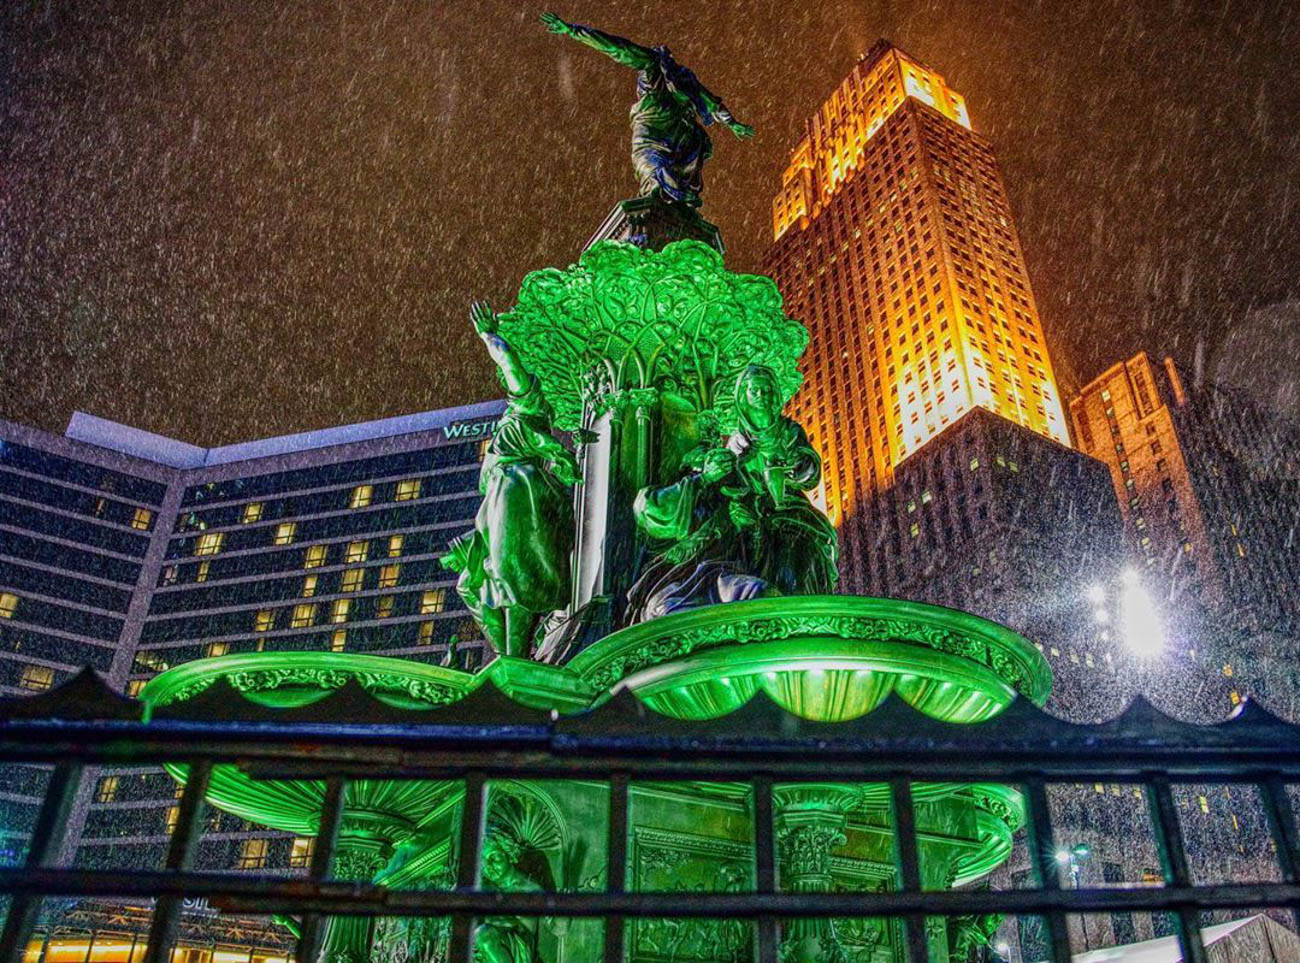 The Tyler Davidson Fountain at Fountain Square comes to life on stormy evenings. / Image courtesy of Instagram user @dkayserus // Published: 3.20.19